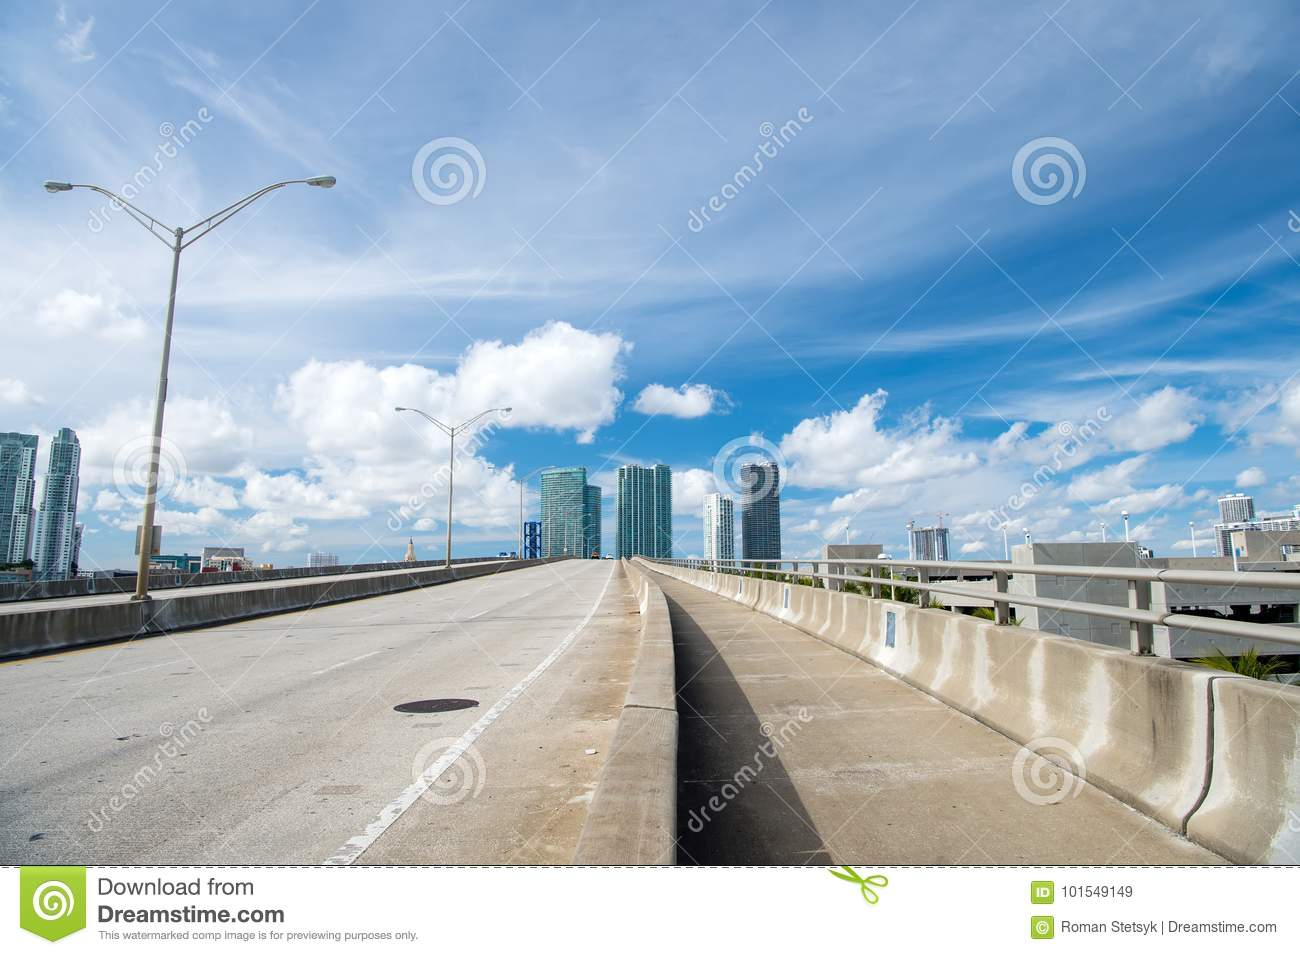 Miami Highway Or Public Road Roadway Stock Image - Image of